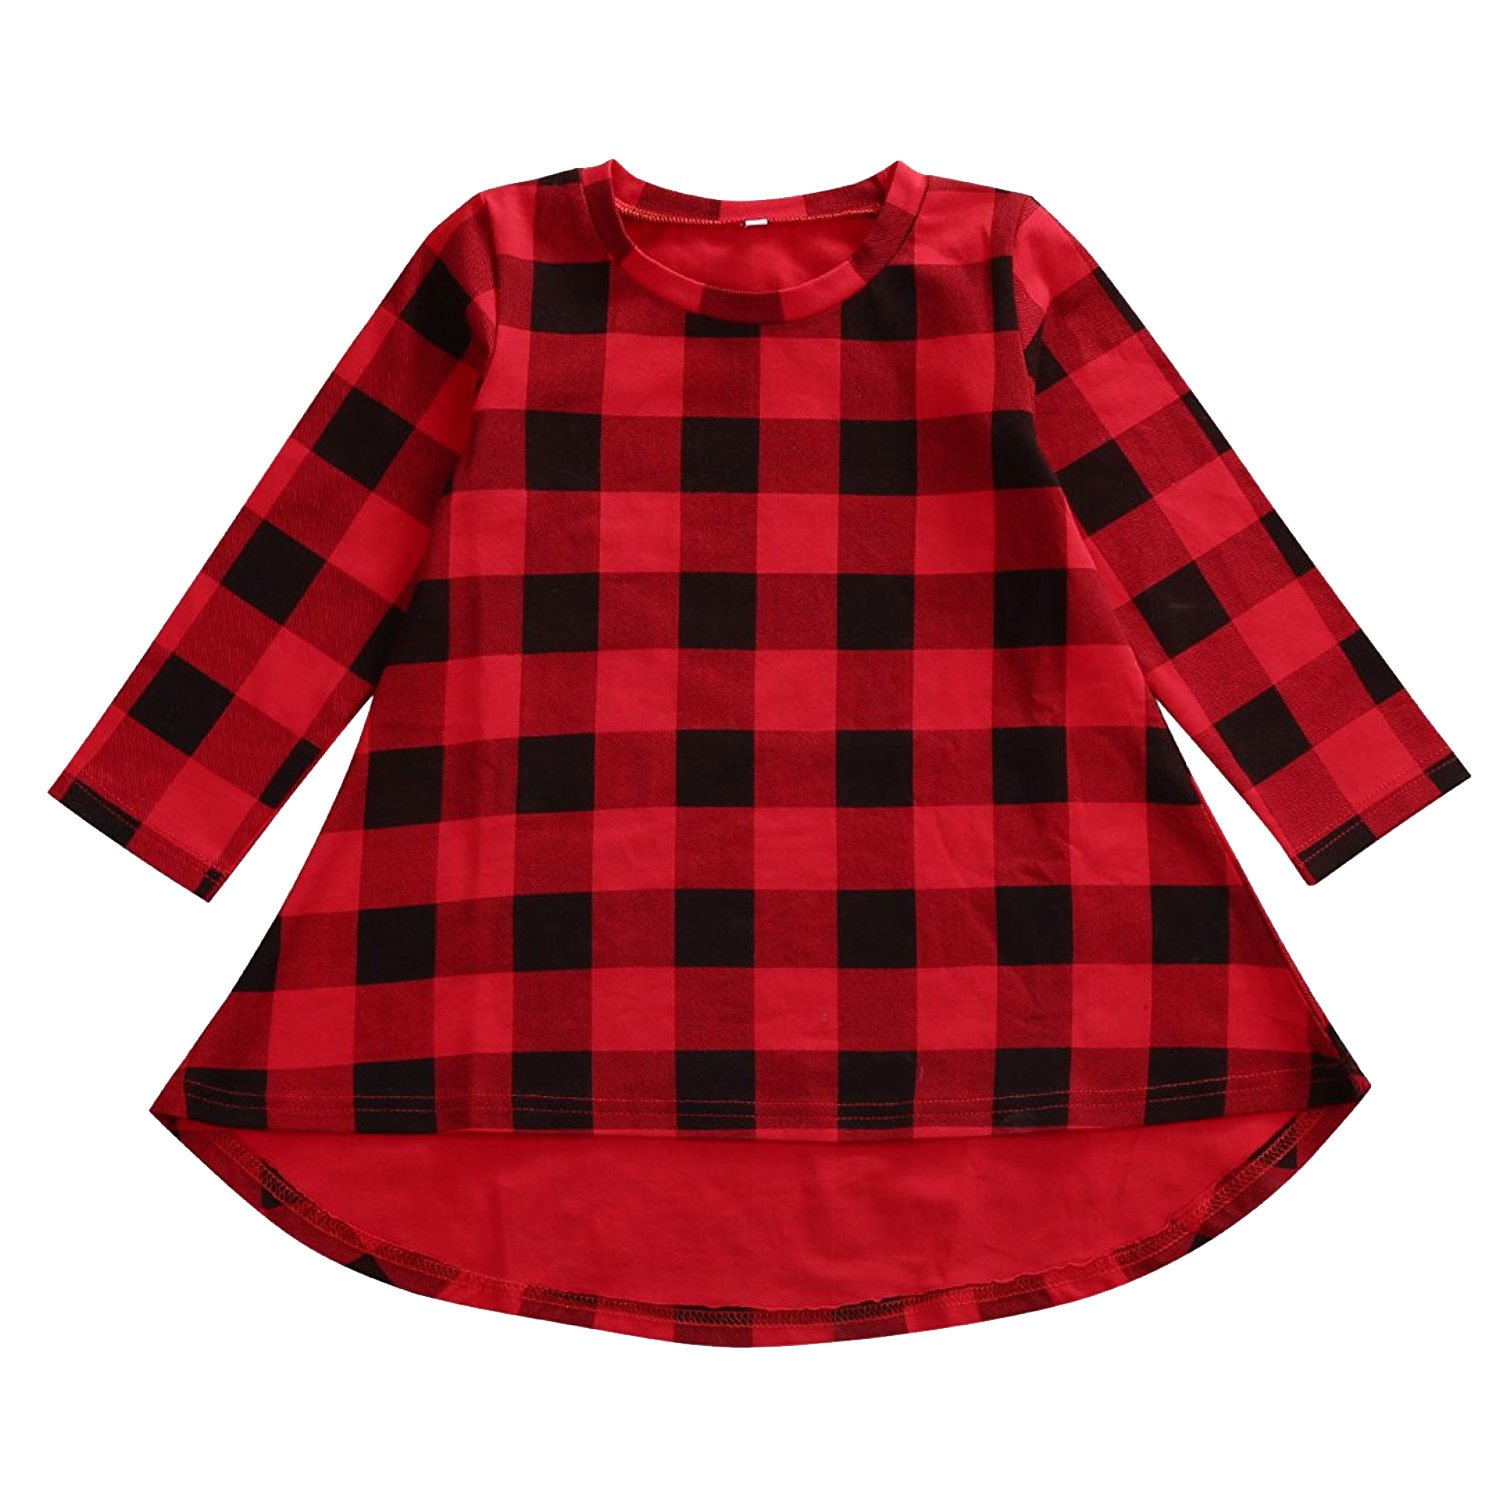 BELS Baby Girls Long Sleeve Plaids Checked Party Princess Dress Tutu for Spring Autumn(5-6T,Red)